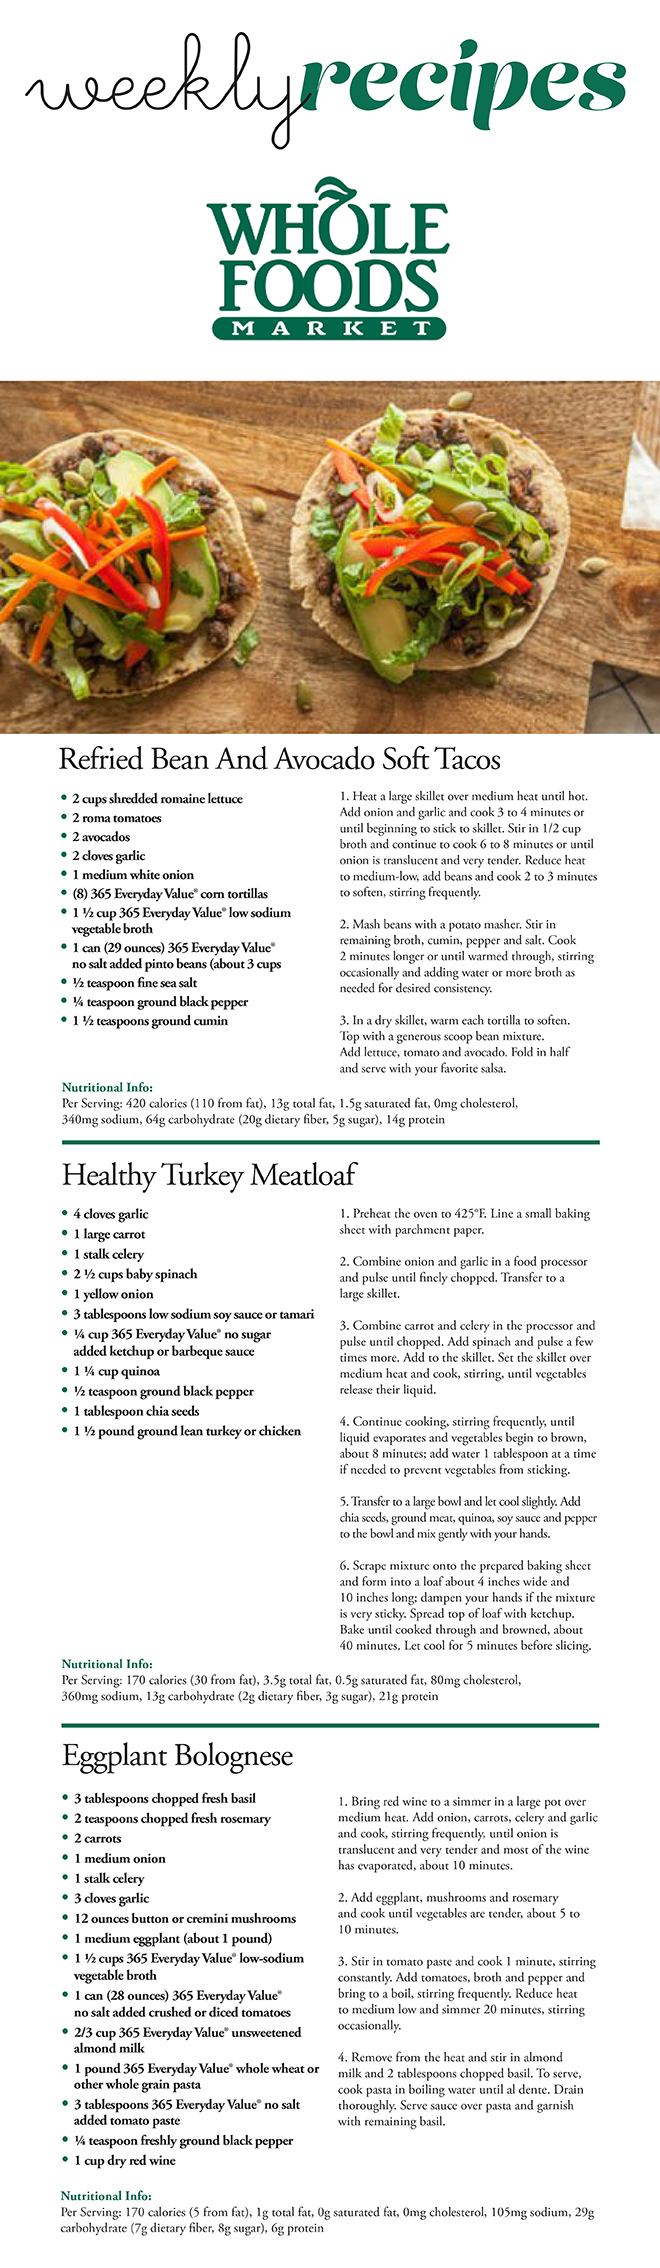 Whole Foods Weekly Recipes